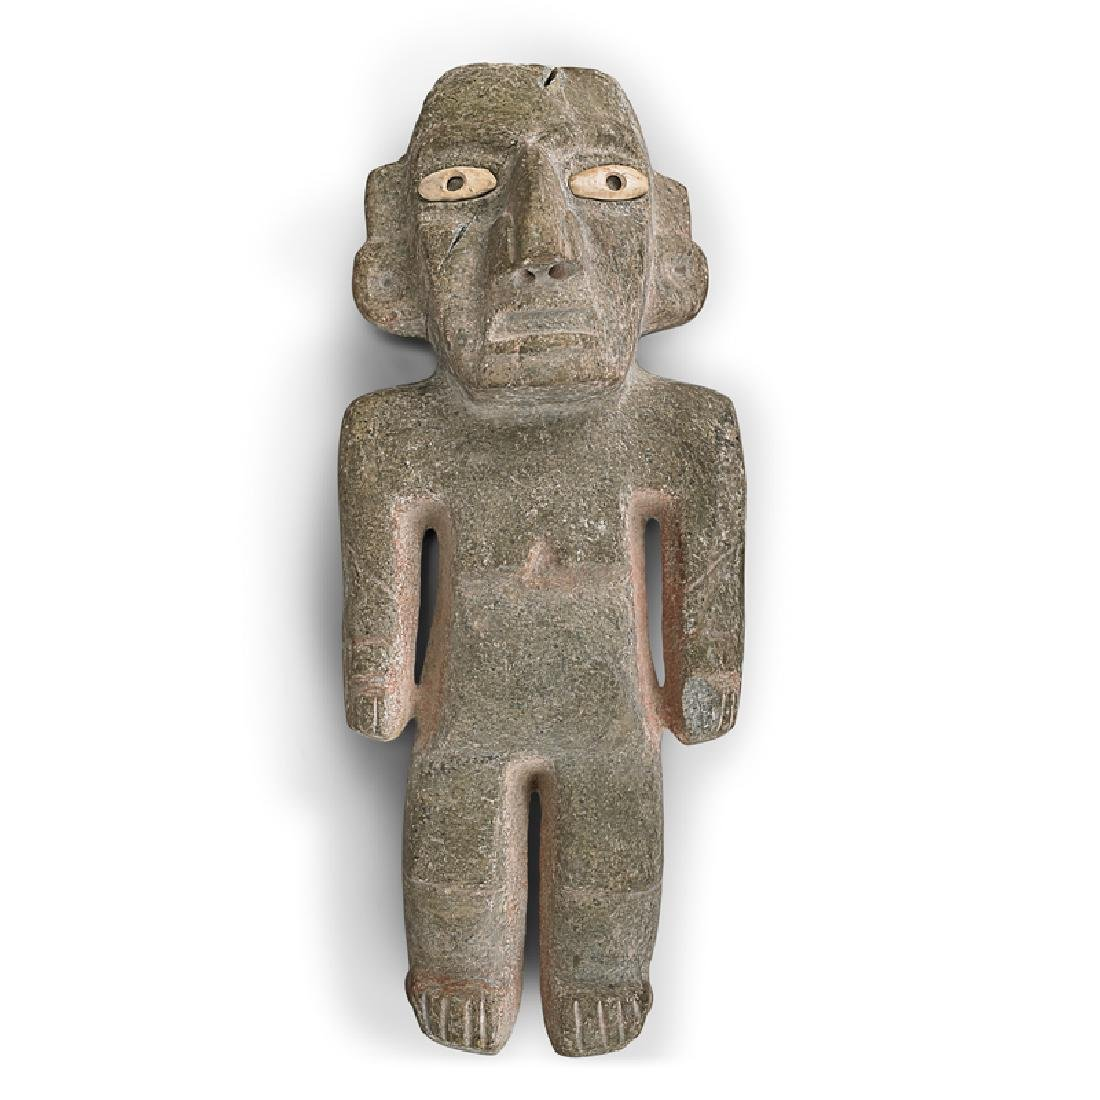 TEOTIHUACAN STYLE, MALE FIGURE, MEXICO